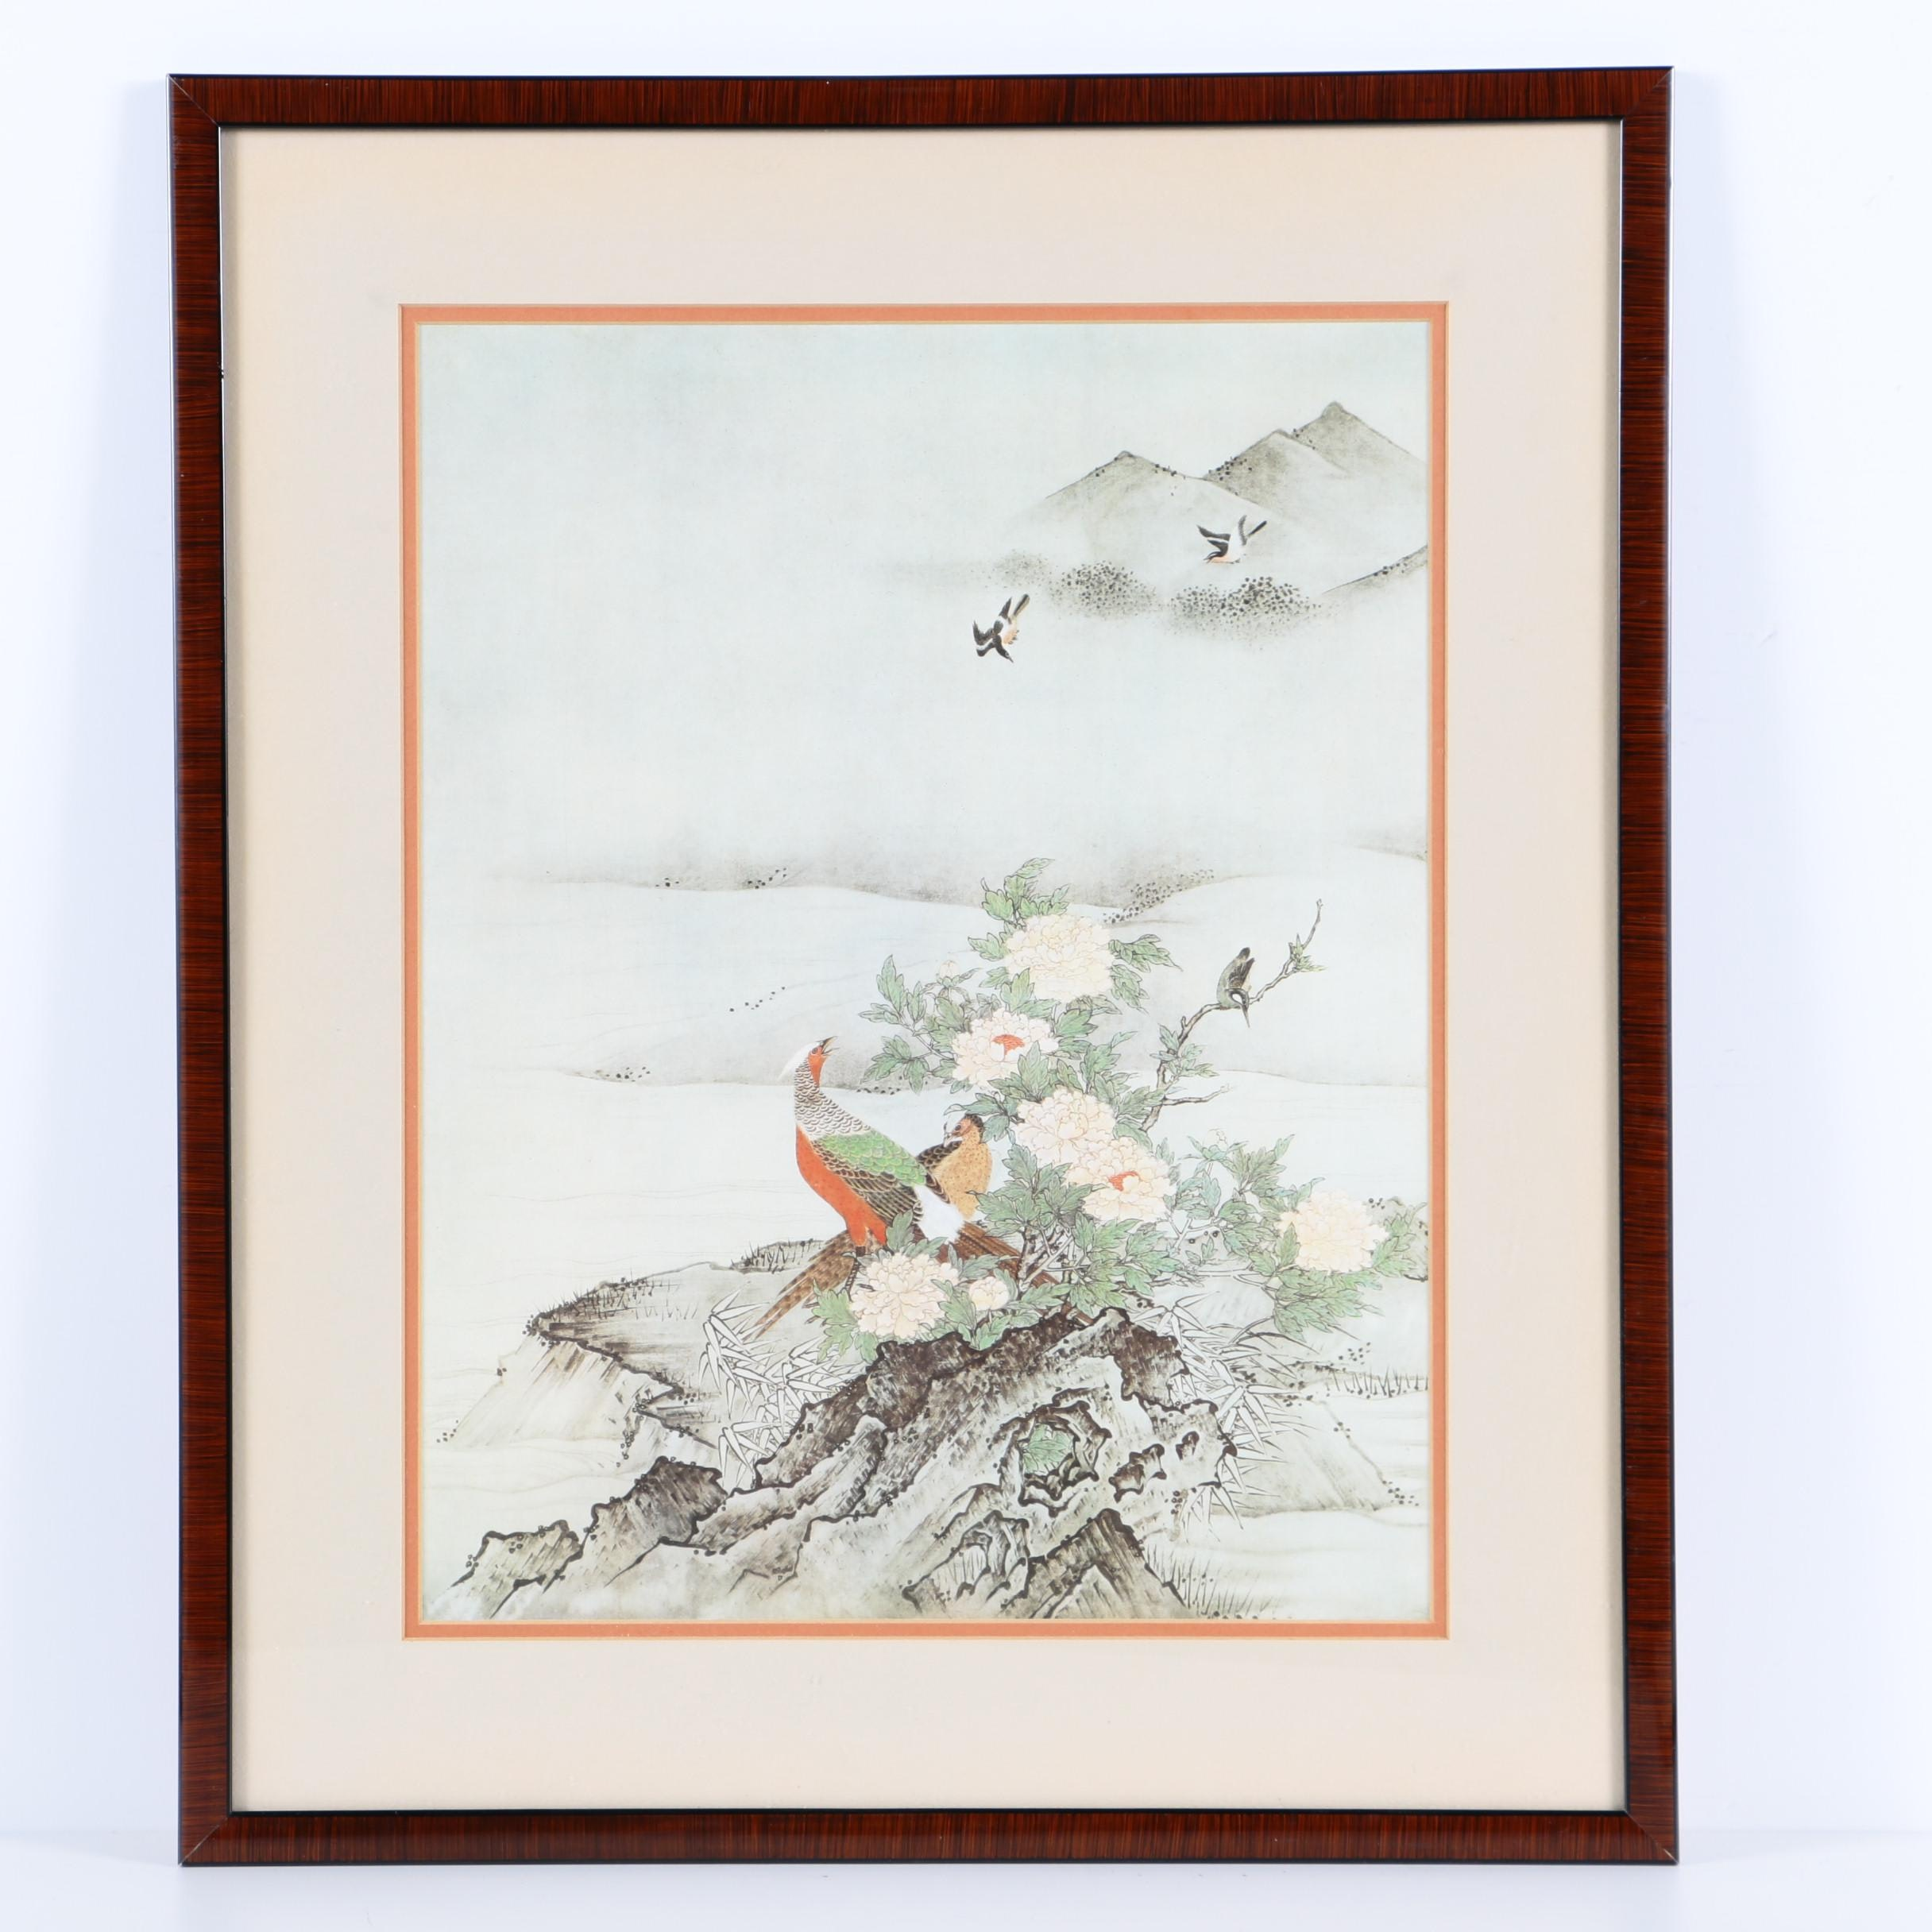 East Asian Style Offset Lithograph on Paper of Birds and Flowers